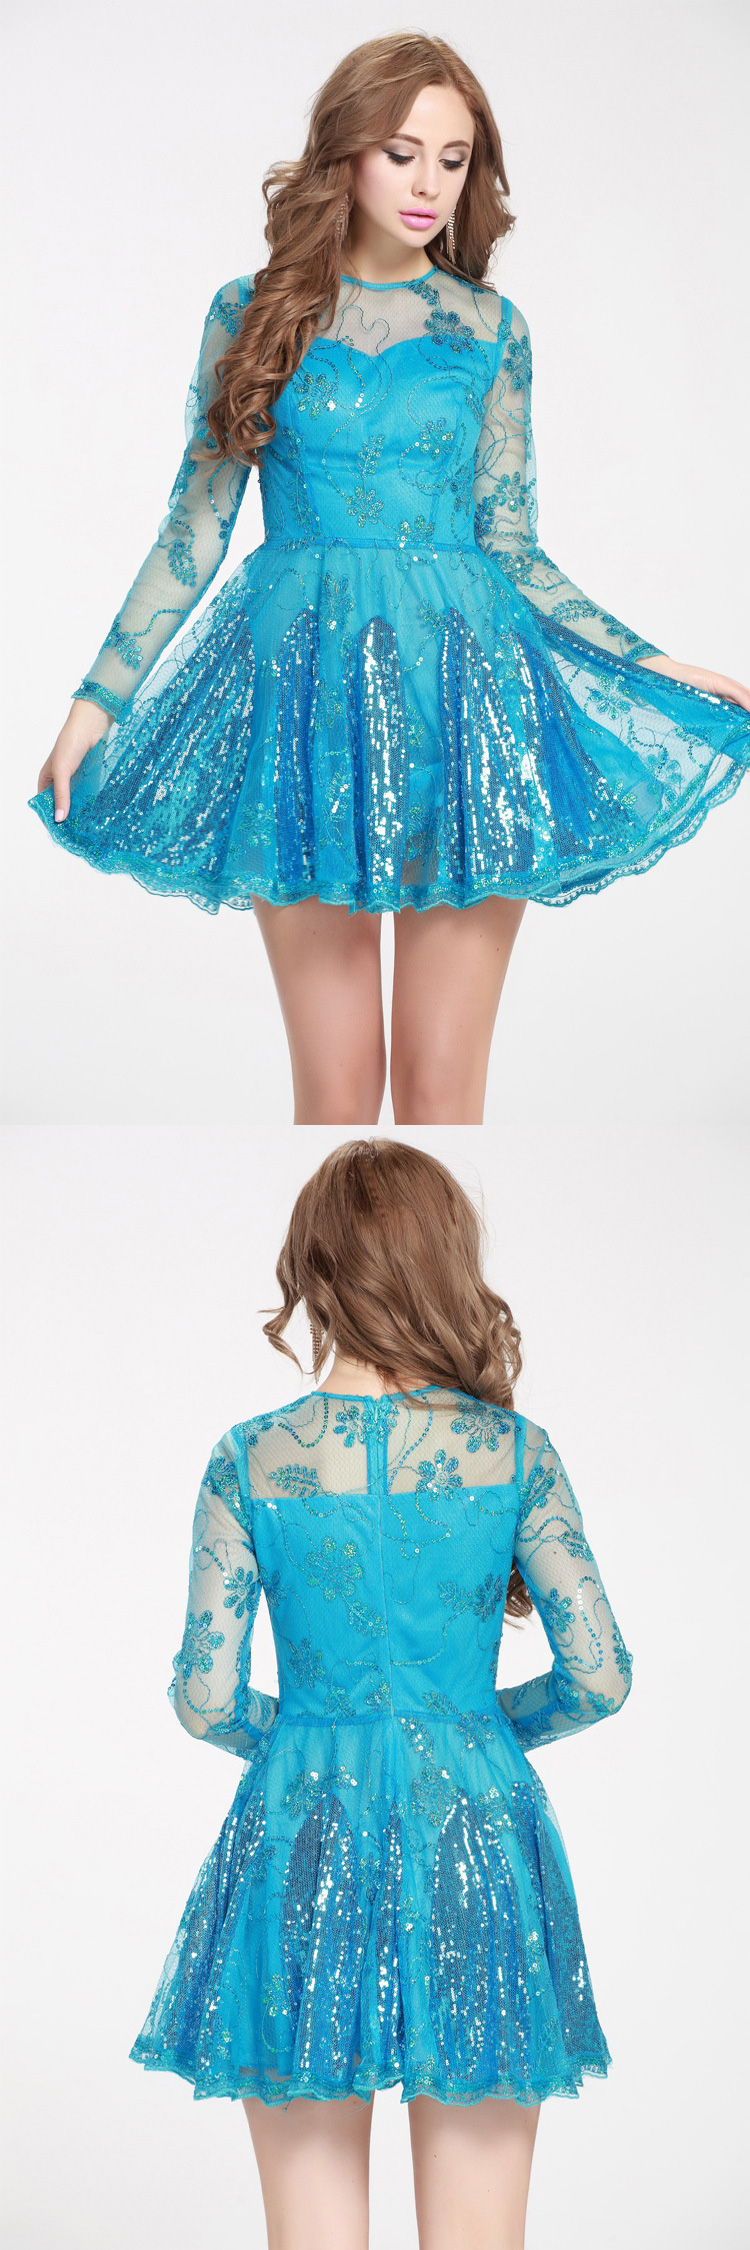 Blue sequined embroidery fit and flare short dress dk